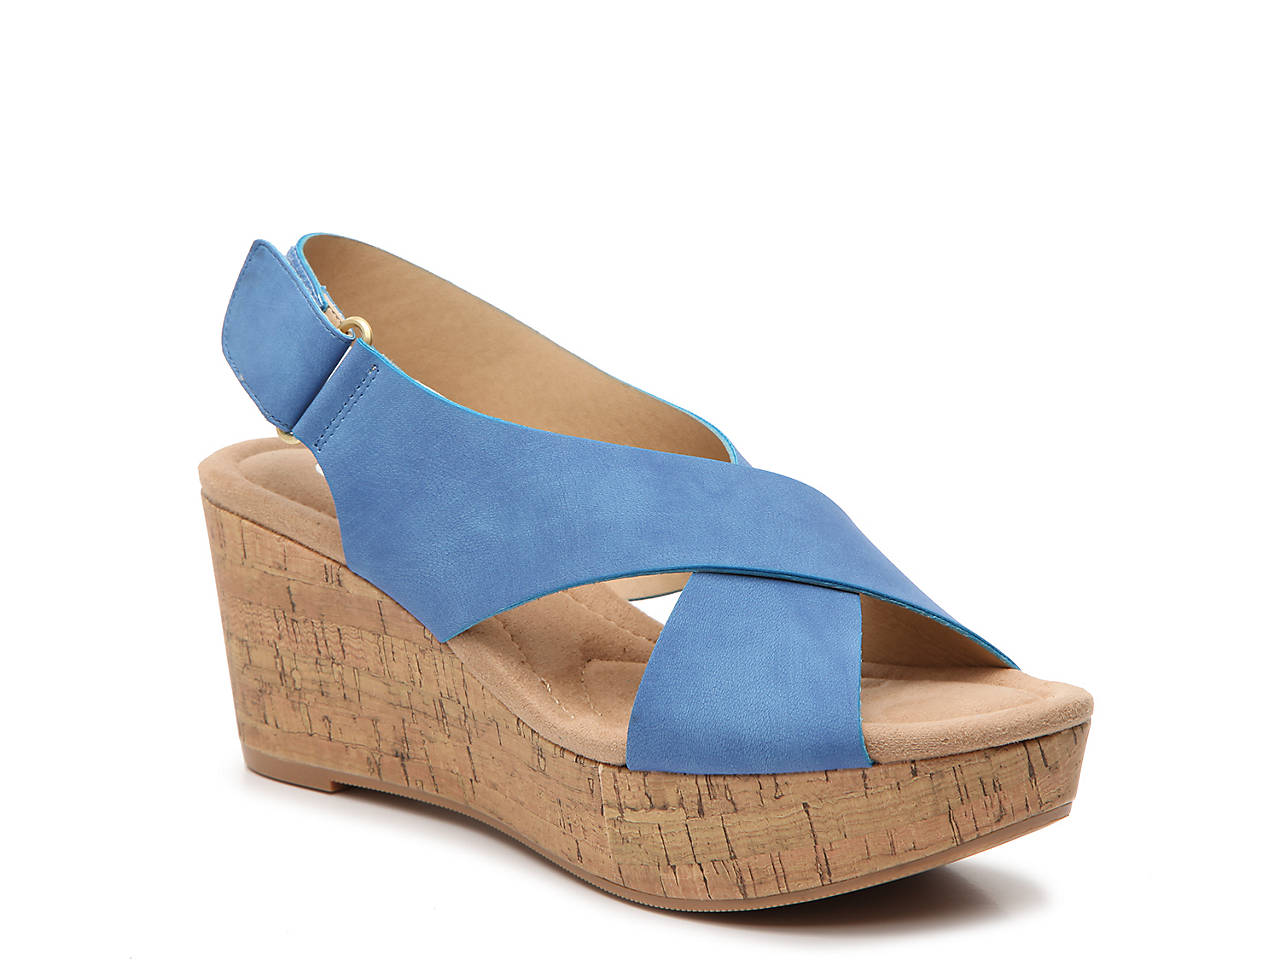 1a6940e5898 Dream Girl Wedge Sandal